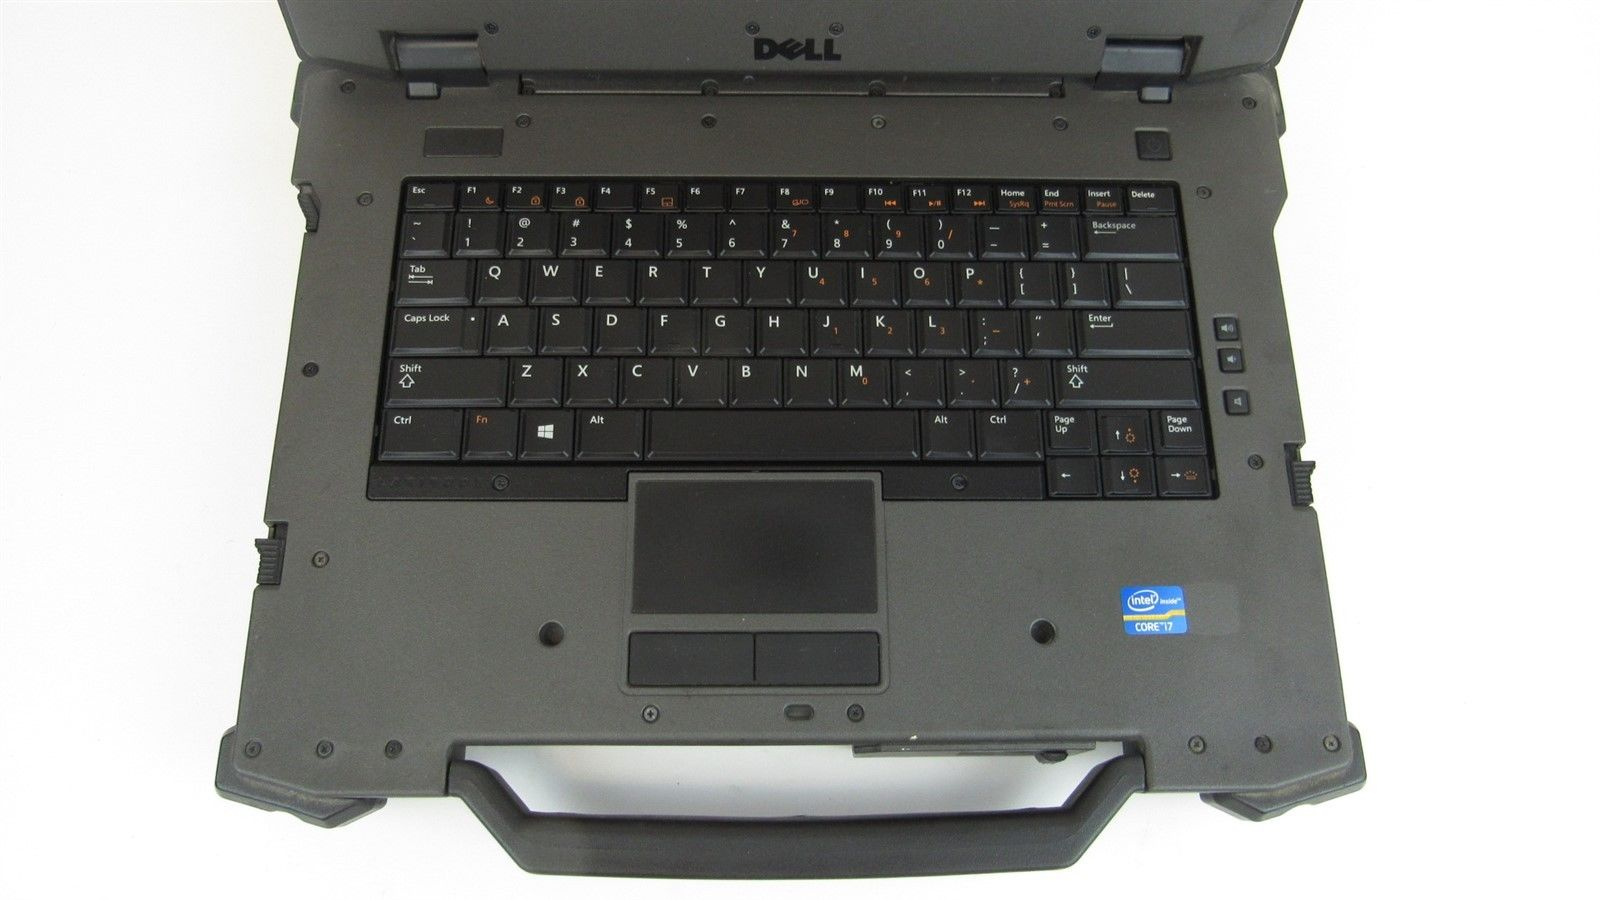 Dell Latitude E6420 XFR I7-2640M 8Gb 128Gb SSD Touchscreen Windows 10 Pro Laptop